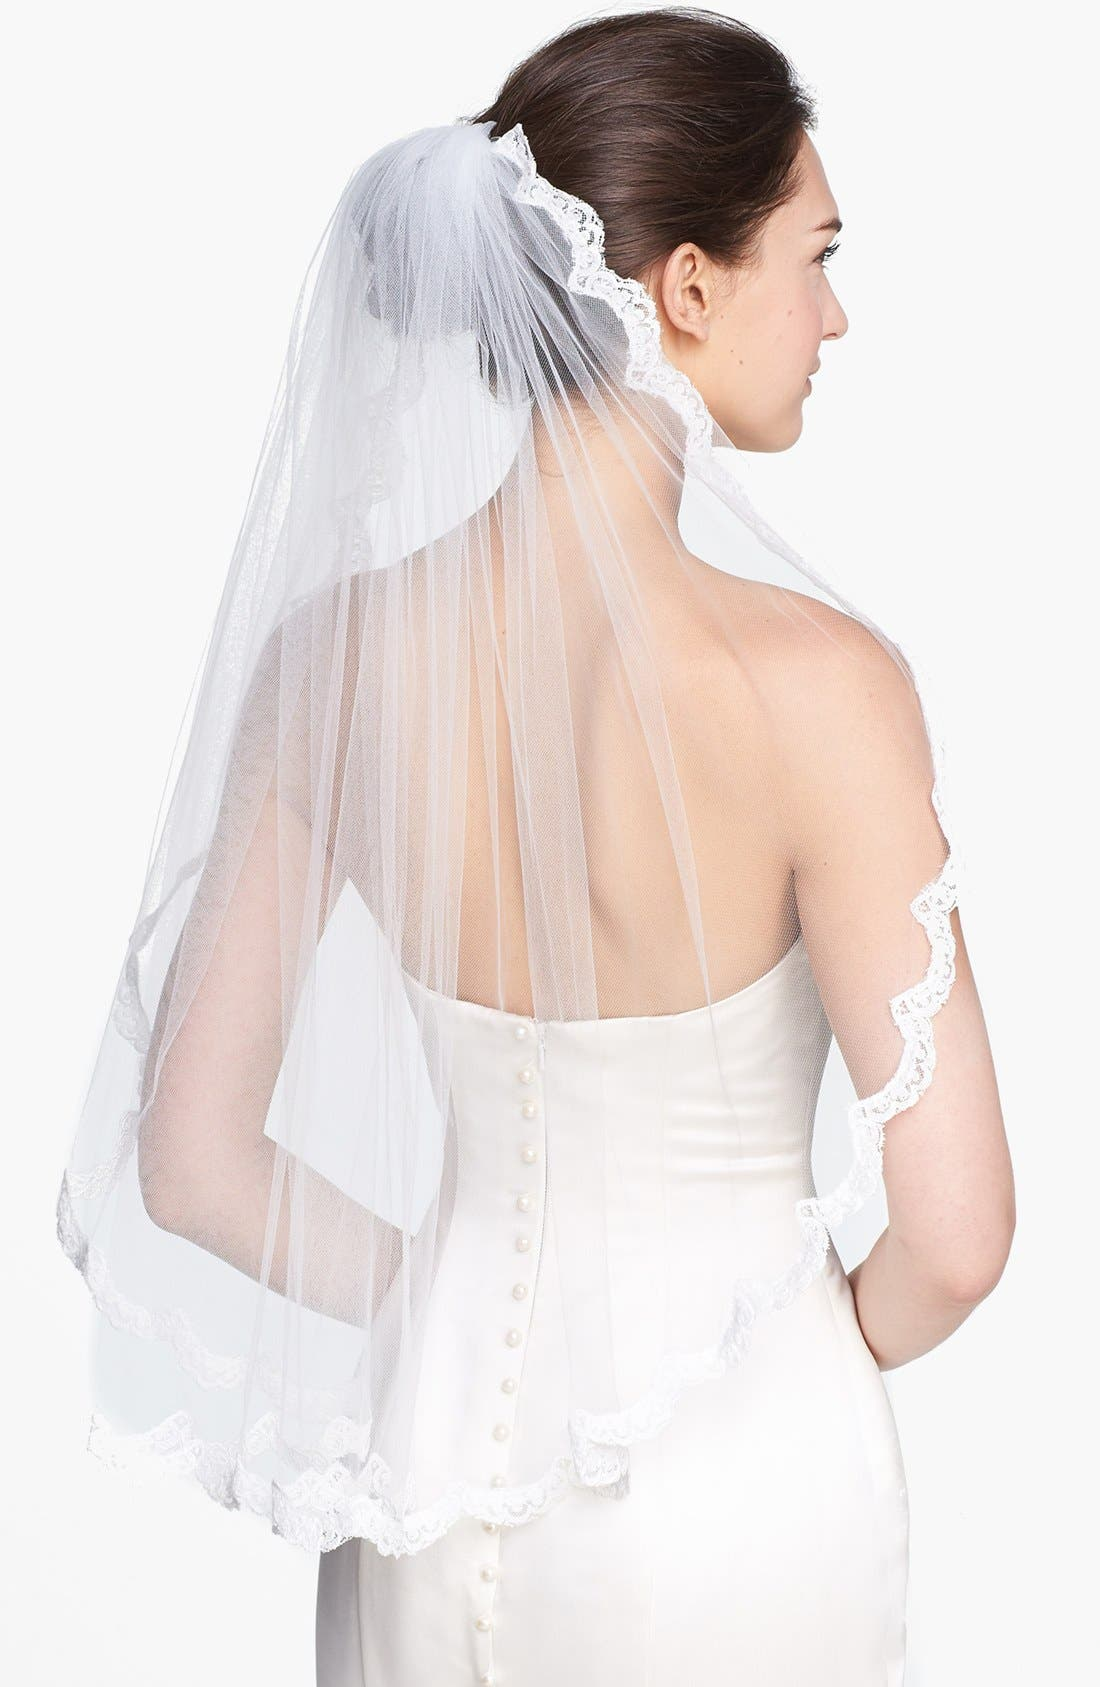 'Lola' Lace Border Veil,                         Main,                         color, DIAMOND WHITE